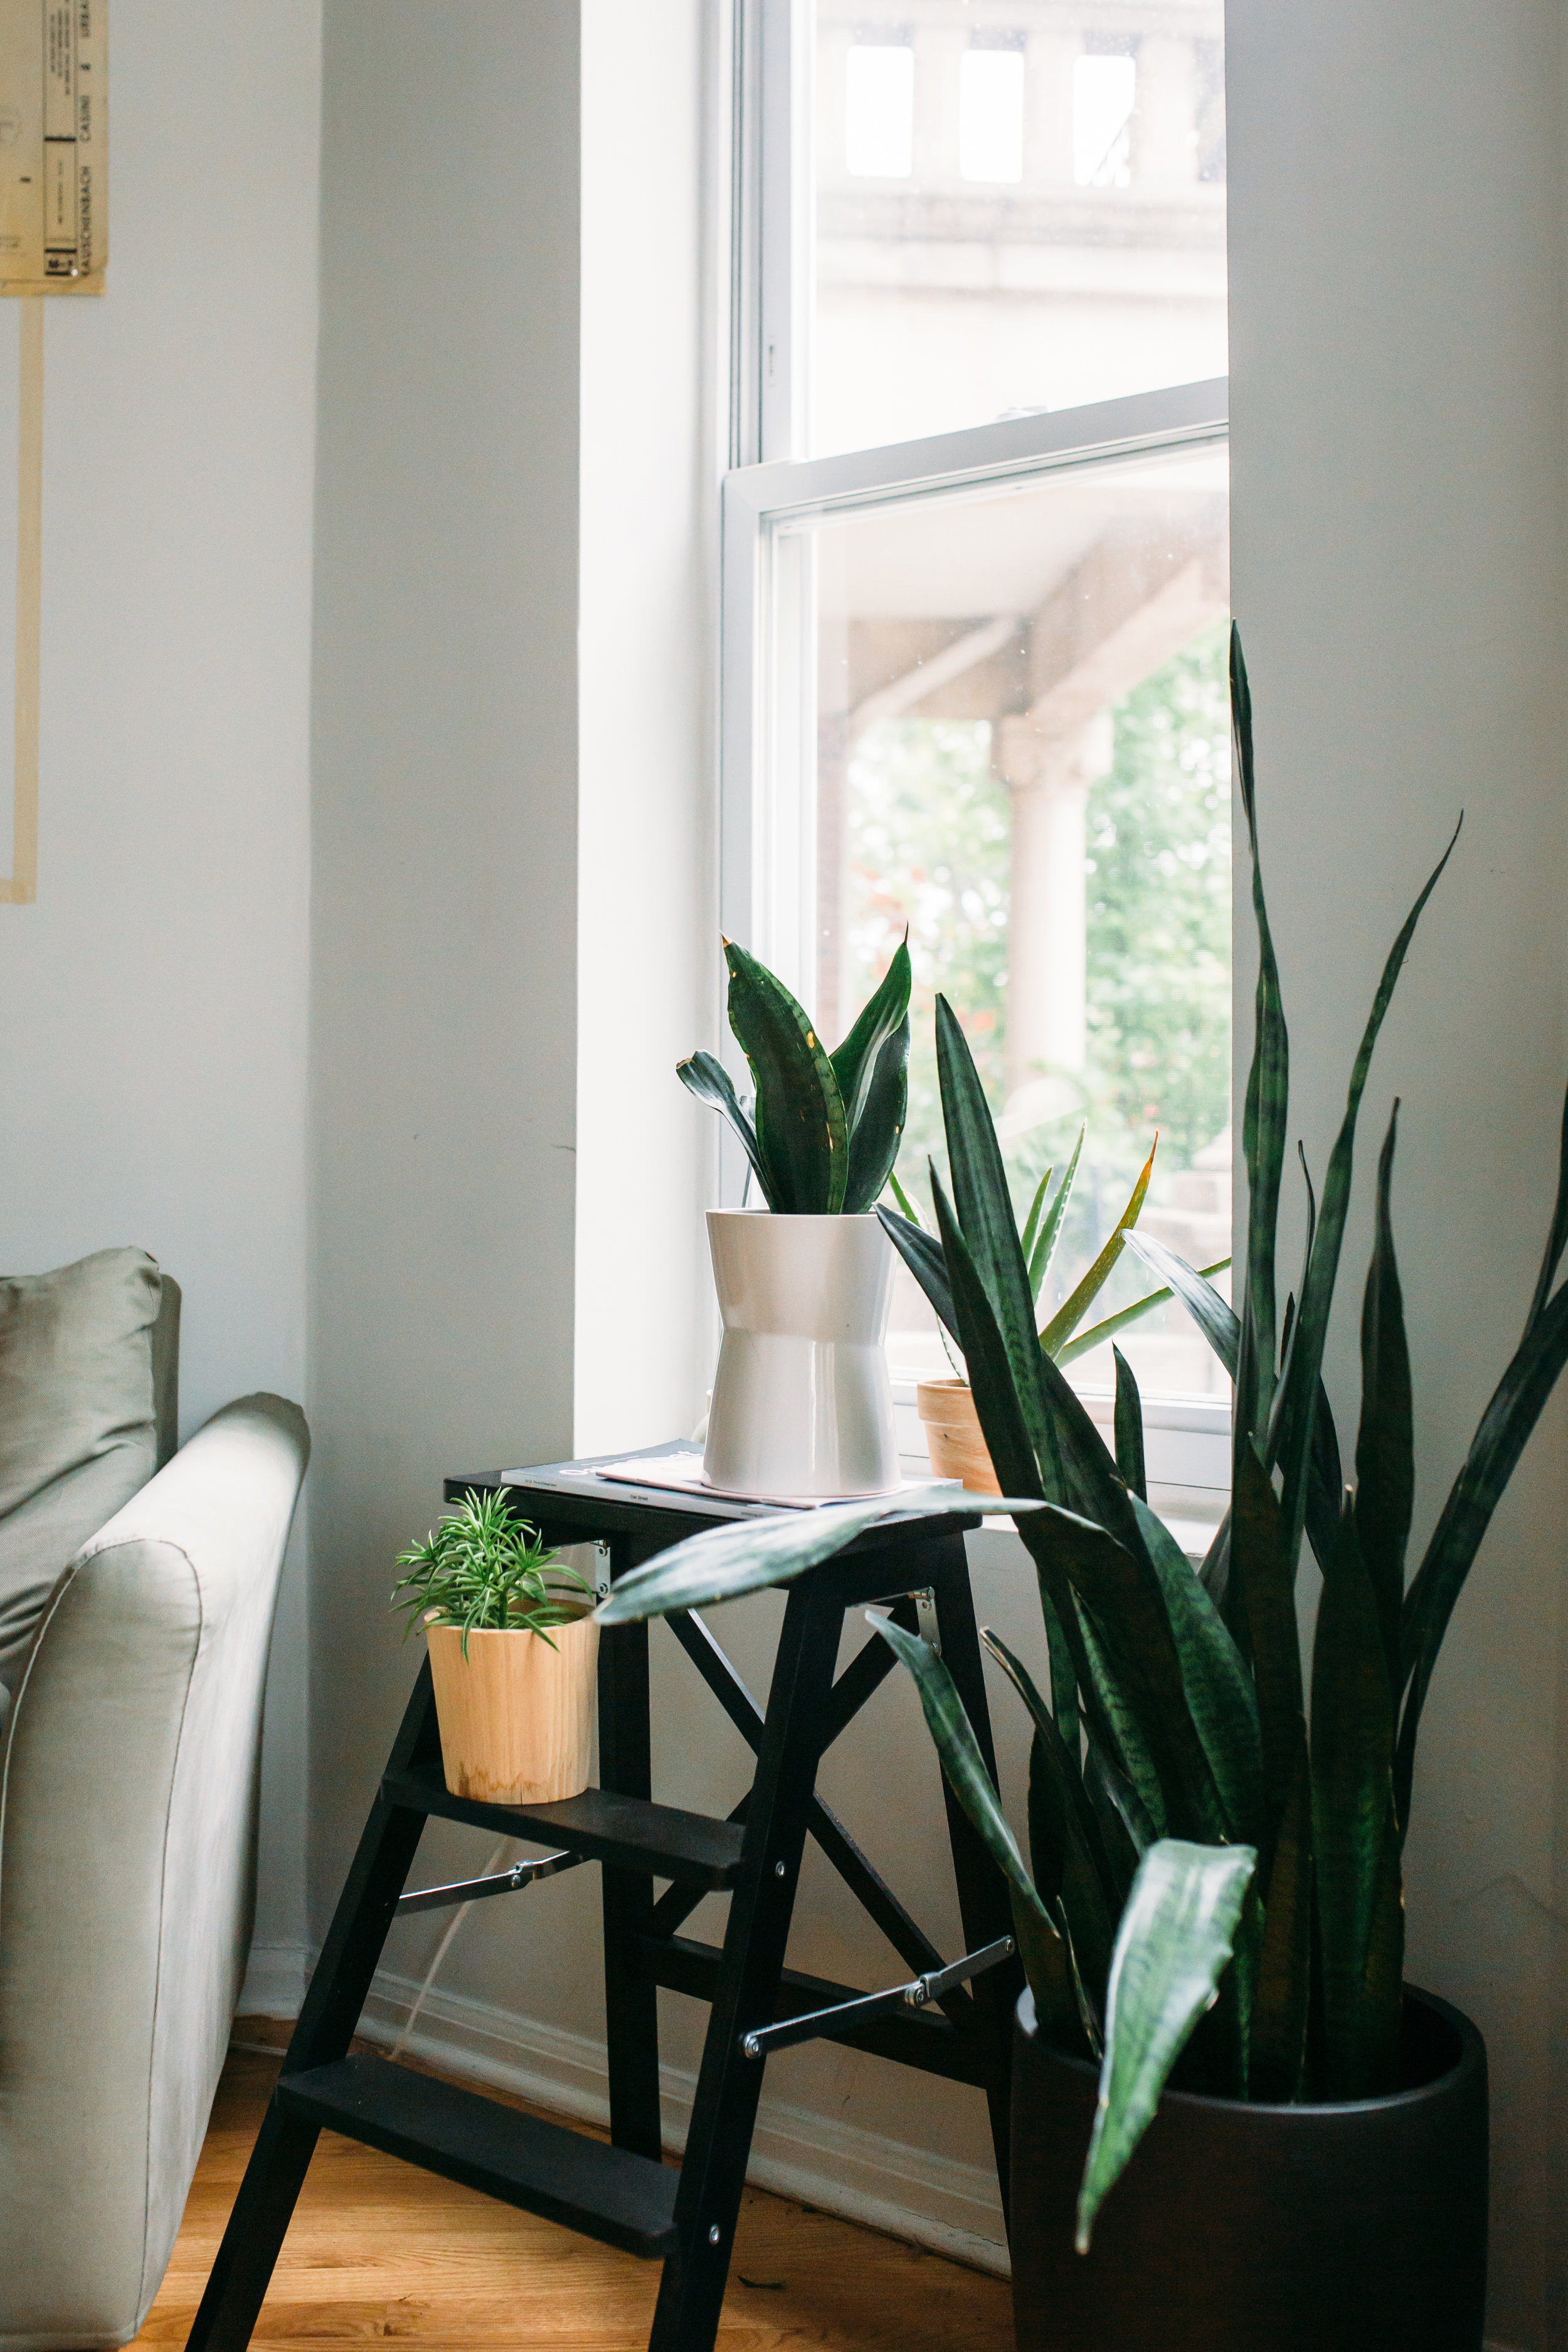 Simplify your indoor plant care routine - Consider your lifestyle and a plant's basic needs so you know what type of routine you can commit to.